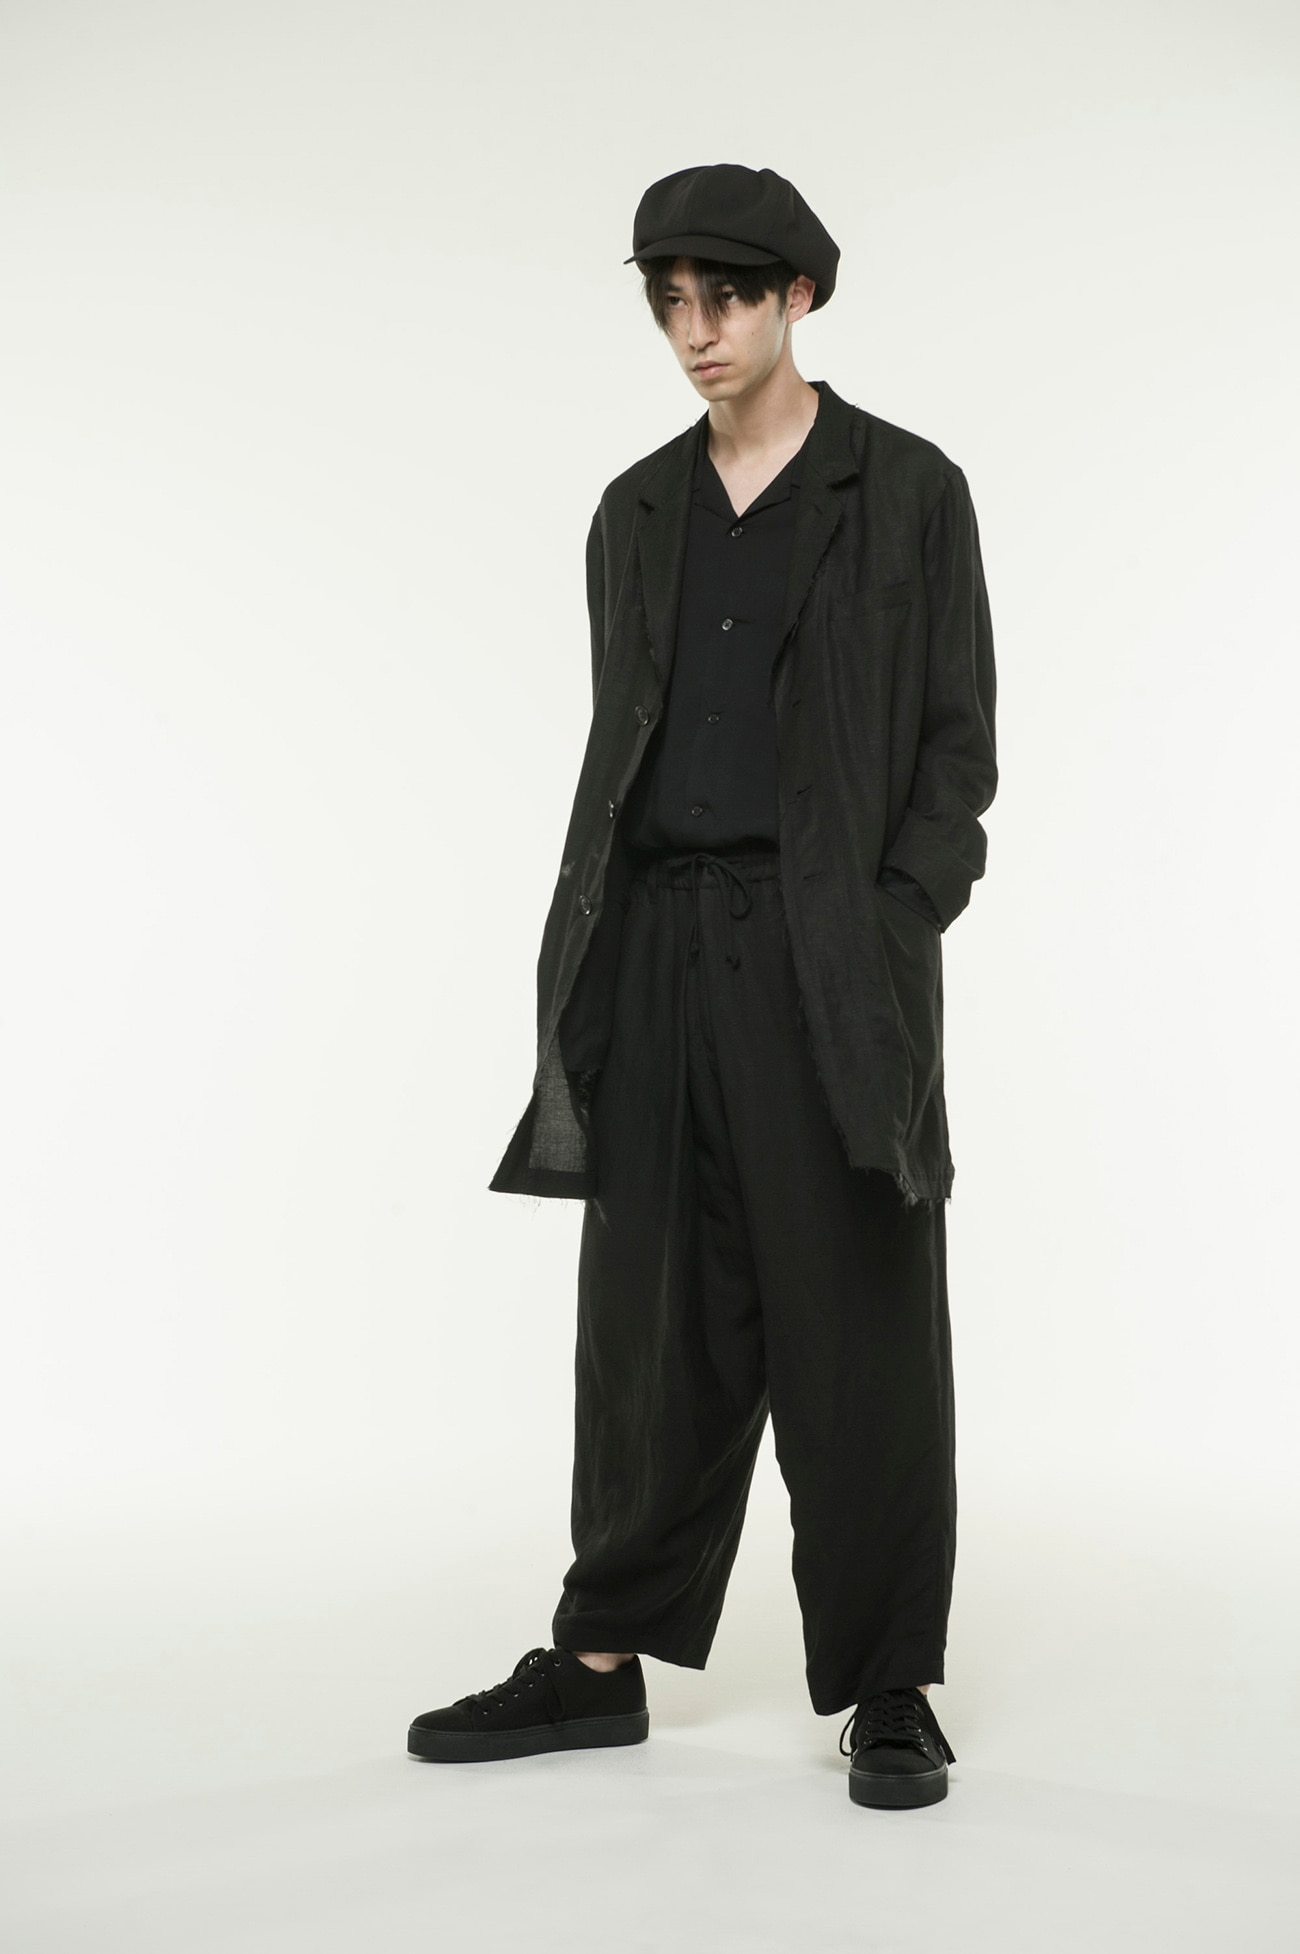 Rayon Linen Easy Cross • B 3 BS Tailored Long Shirt Jacket